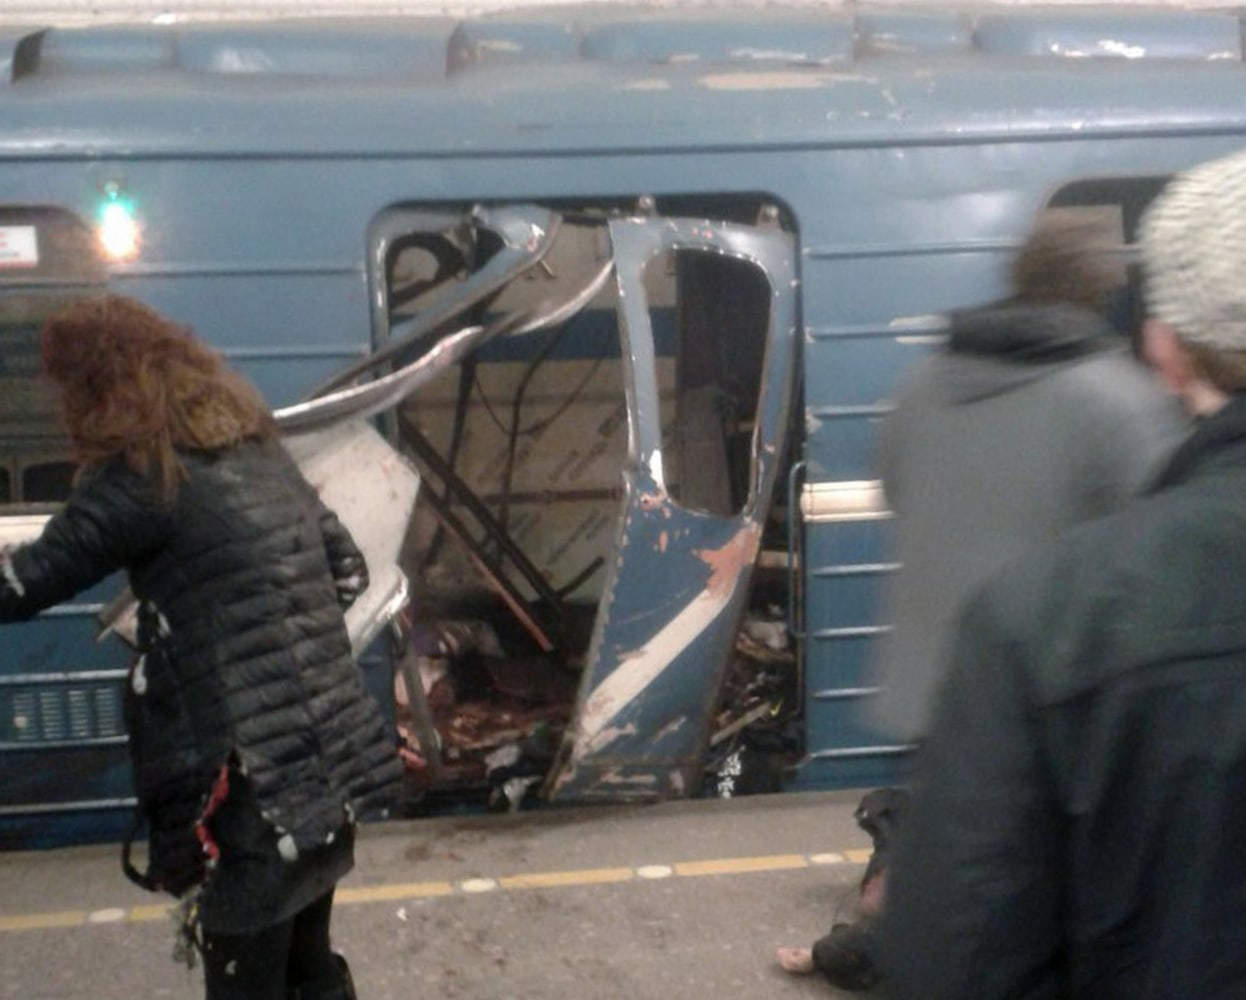 6 arrested for terrorism in wake of St. Petersburg bombing